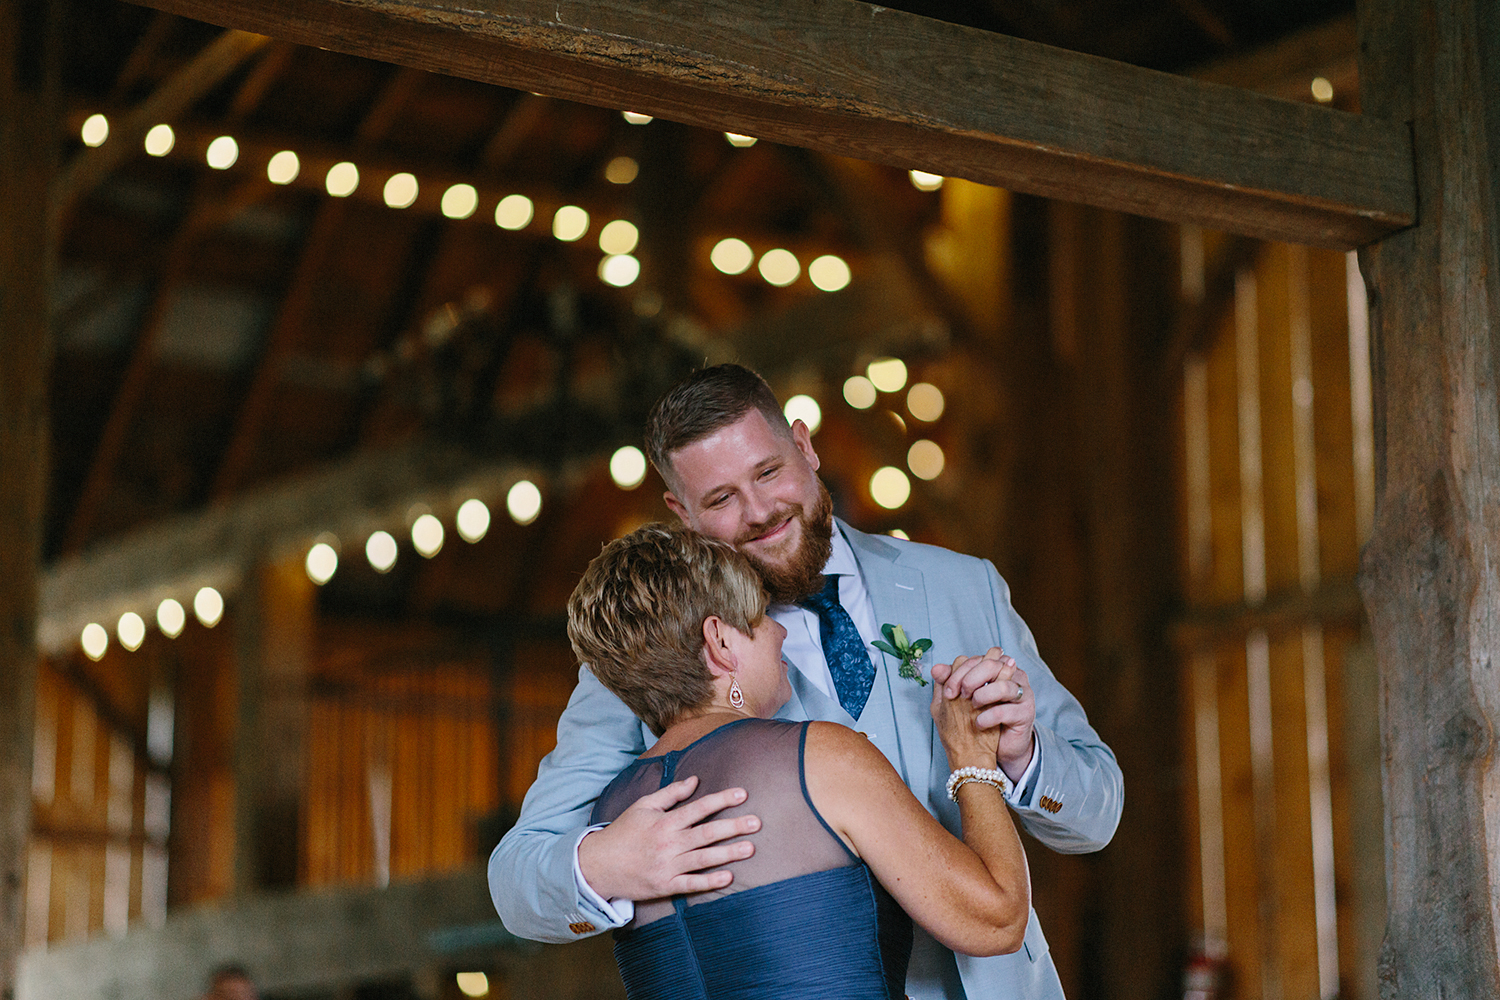 cambium-farms-wedding-ryanne-hollies-photography-gay-wedding-lgbtq-trendy-cool-badass-junebug-weddings-inspiration-reception-celebration-bride-and-bride-first-dance-in-barn-with-string-lights-and-other-guests-around-them-in-love-pride-2018.jpg